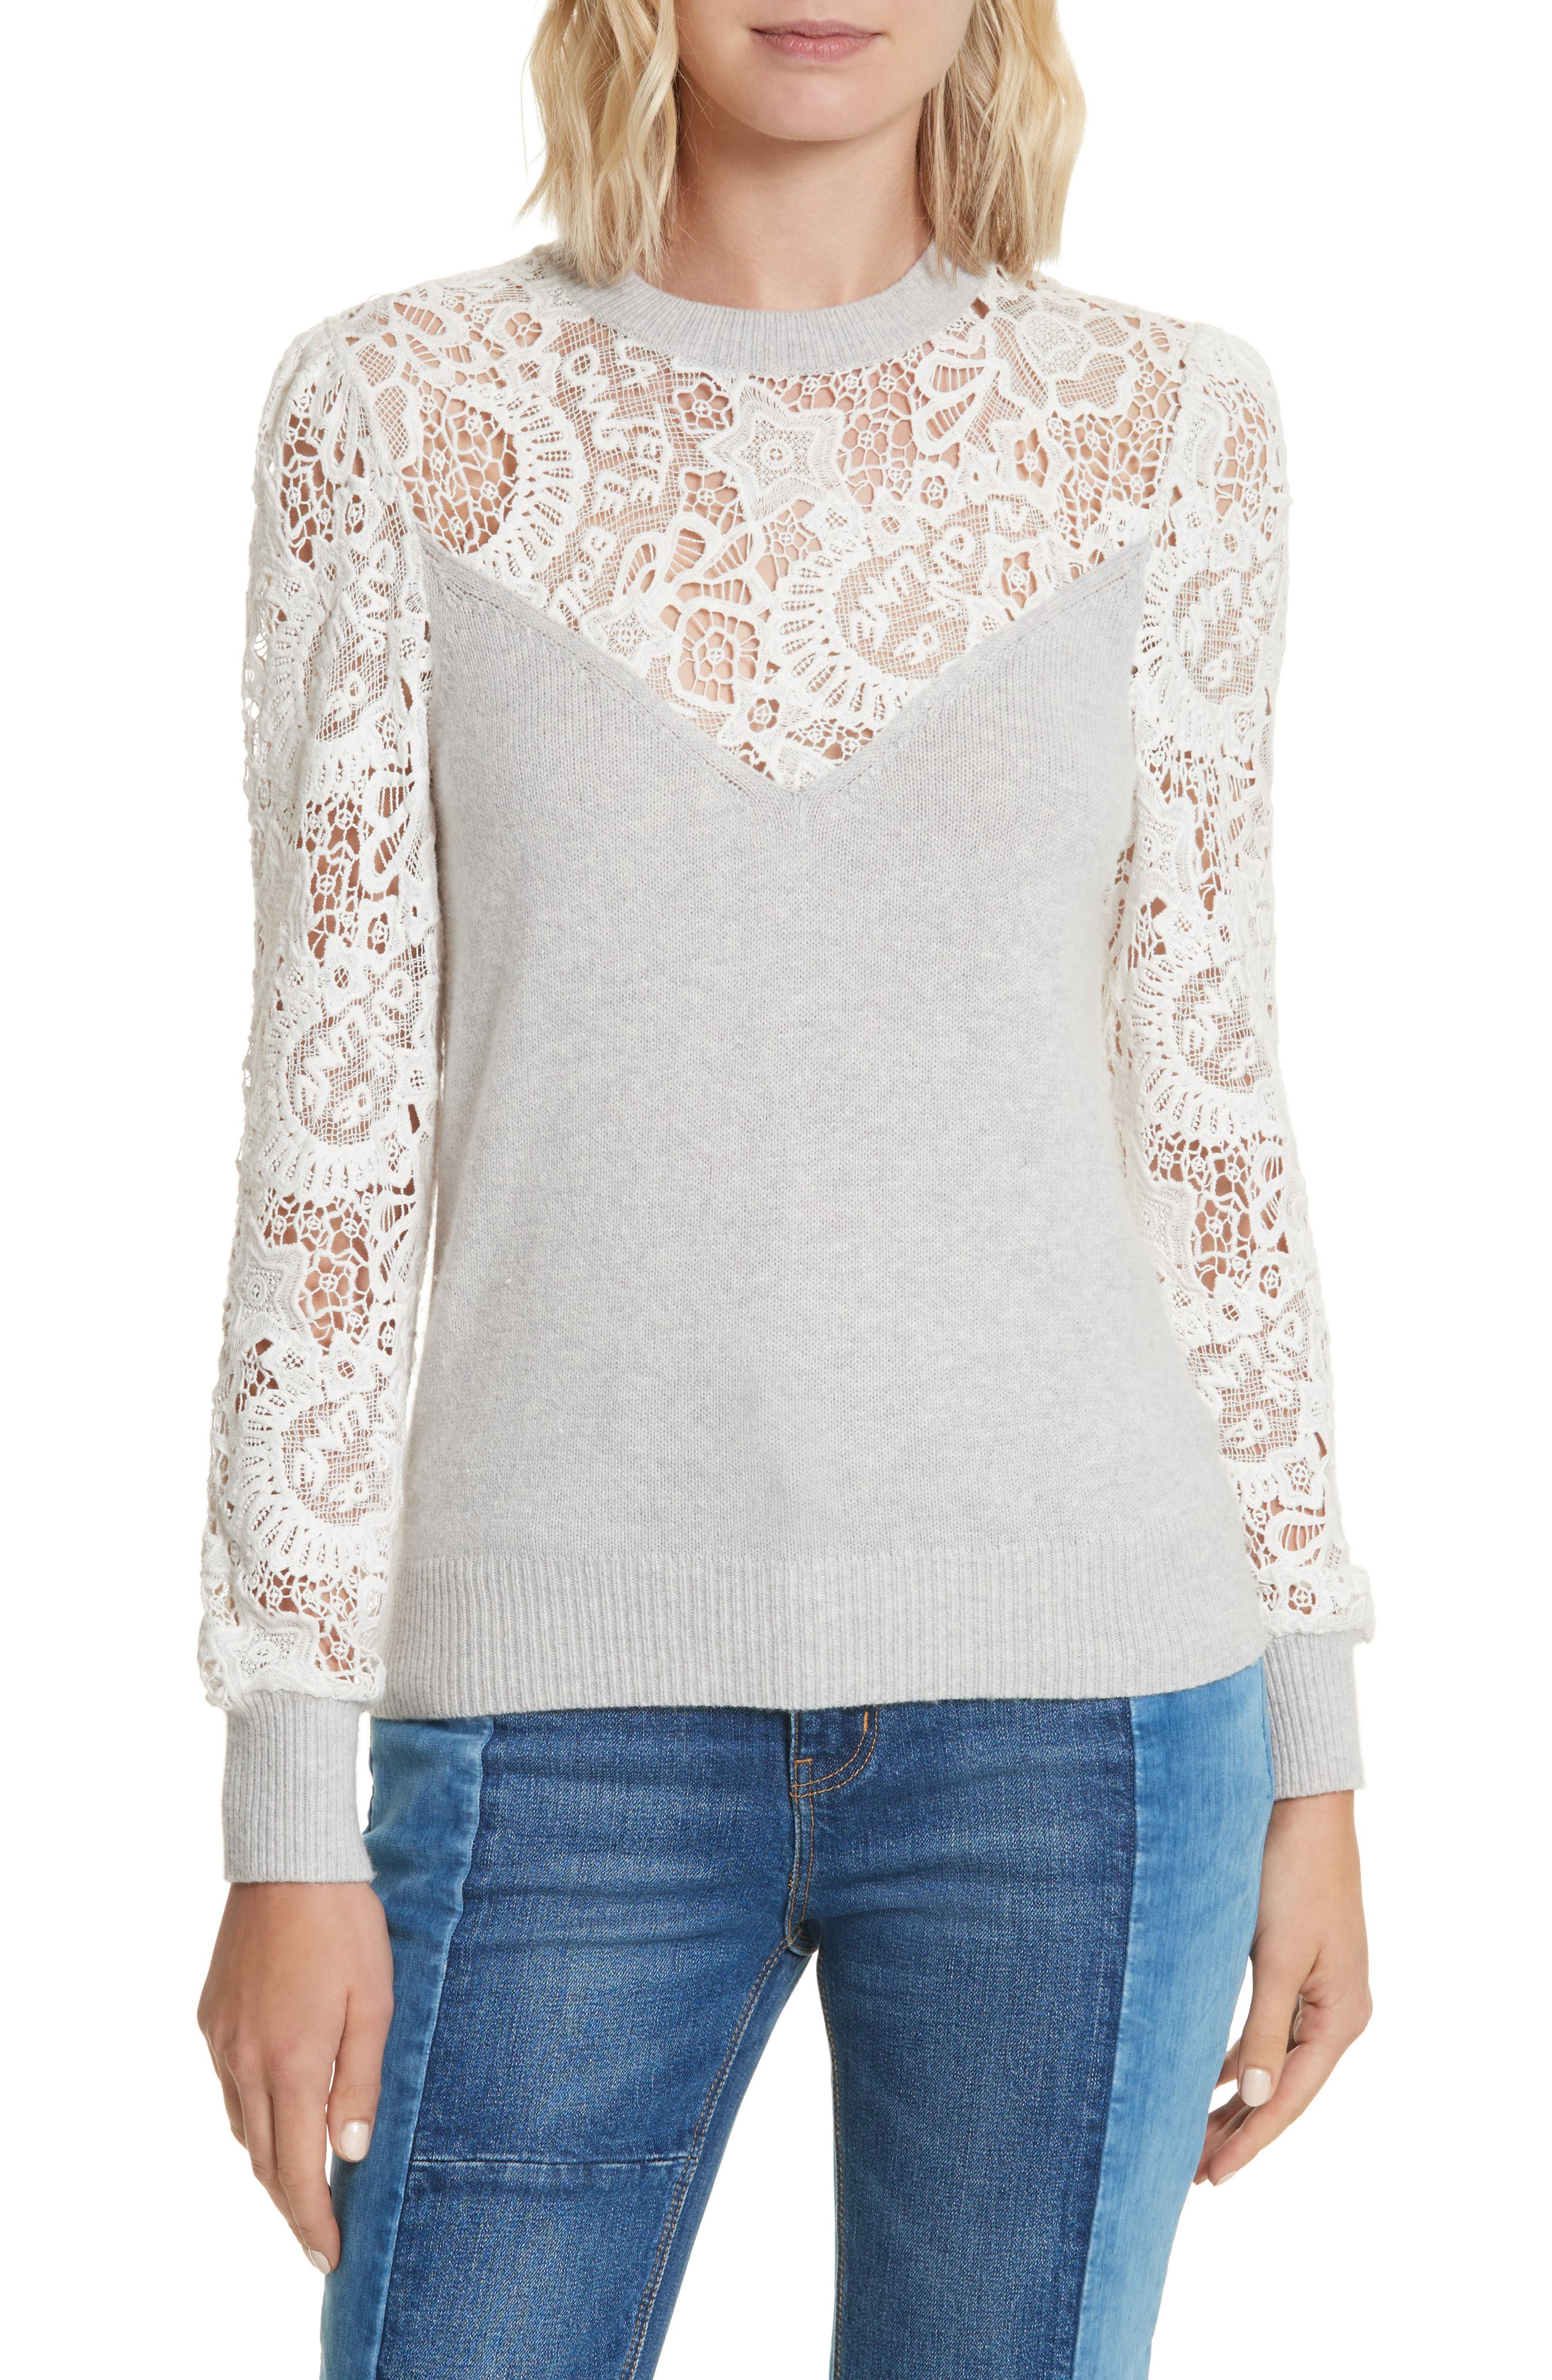 Alternate Image 1 Selected - Rebecca Taylor Lace Trim Knit Pullover